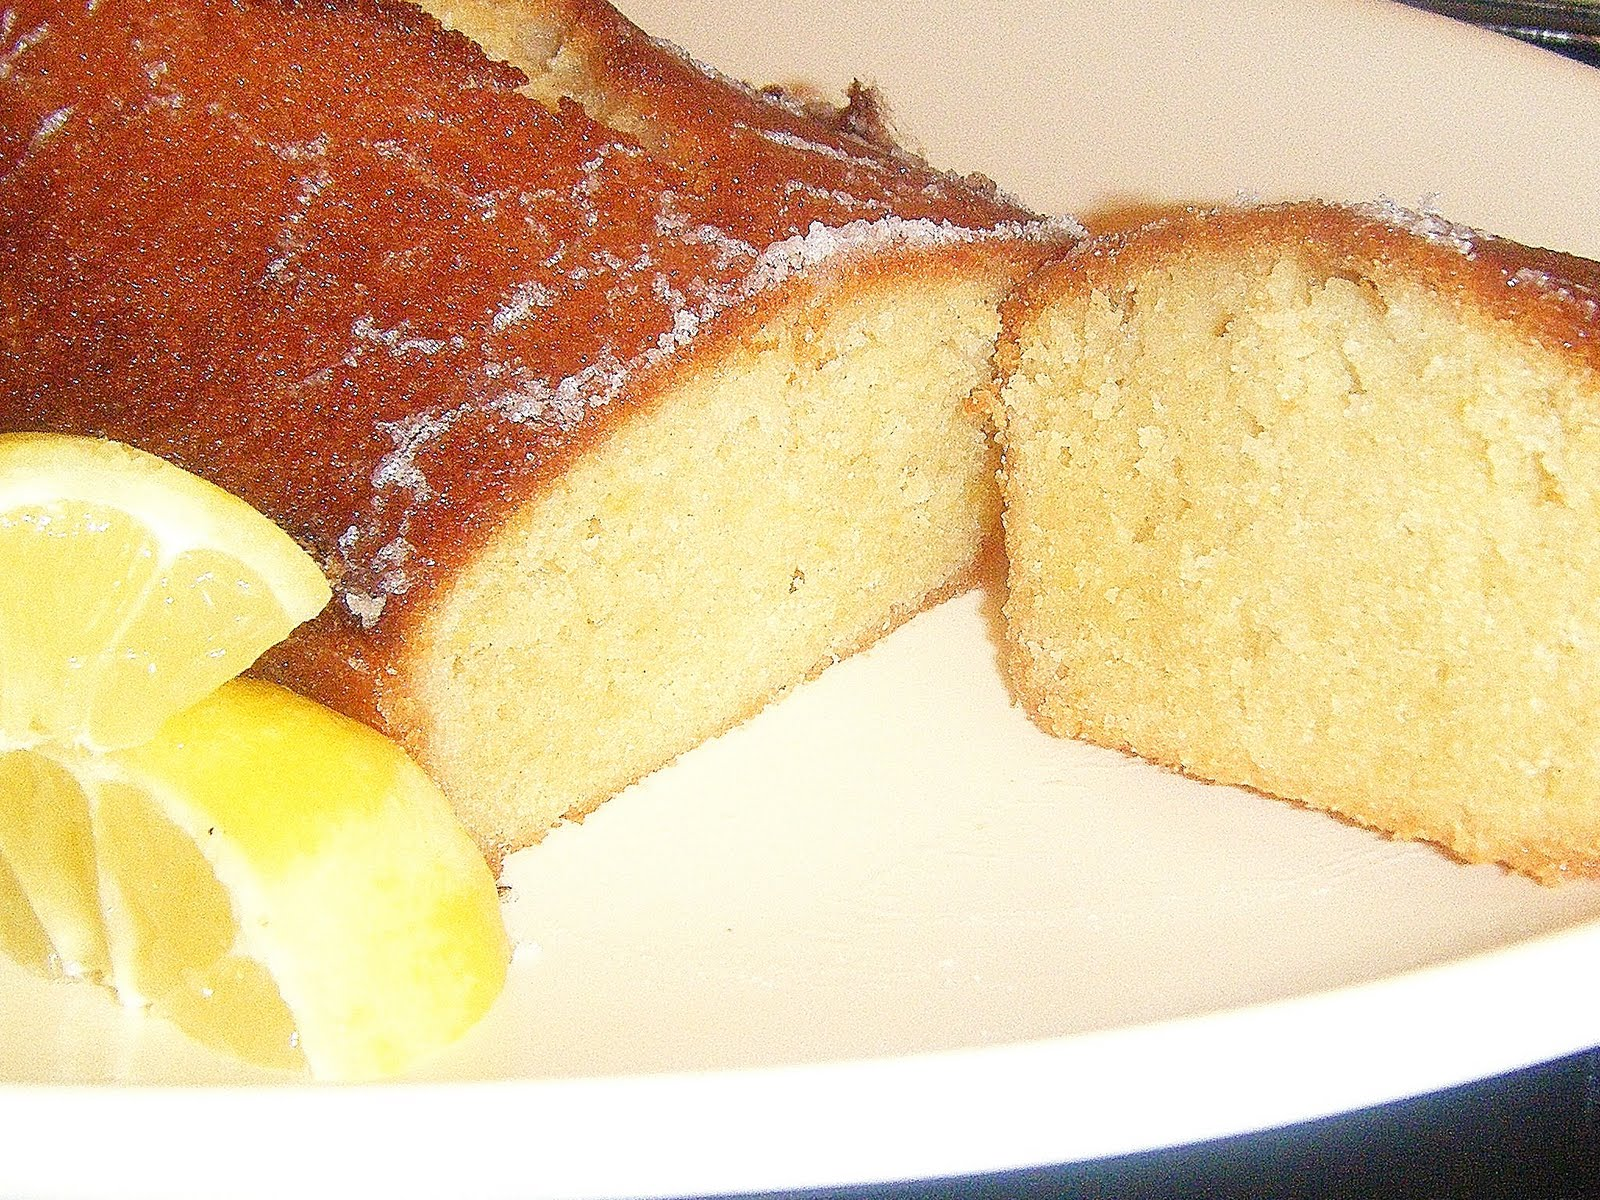 Recipes Using Lemon Drizzle Cake: The Best Recipes: The BEST Lemon Drizzle Cake